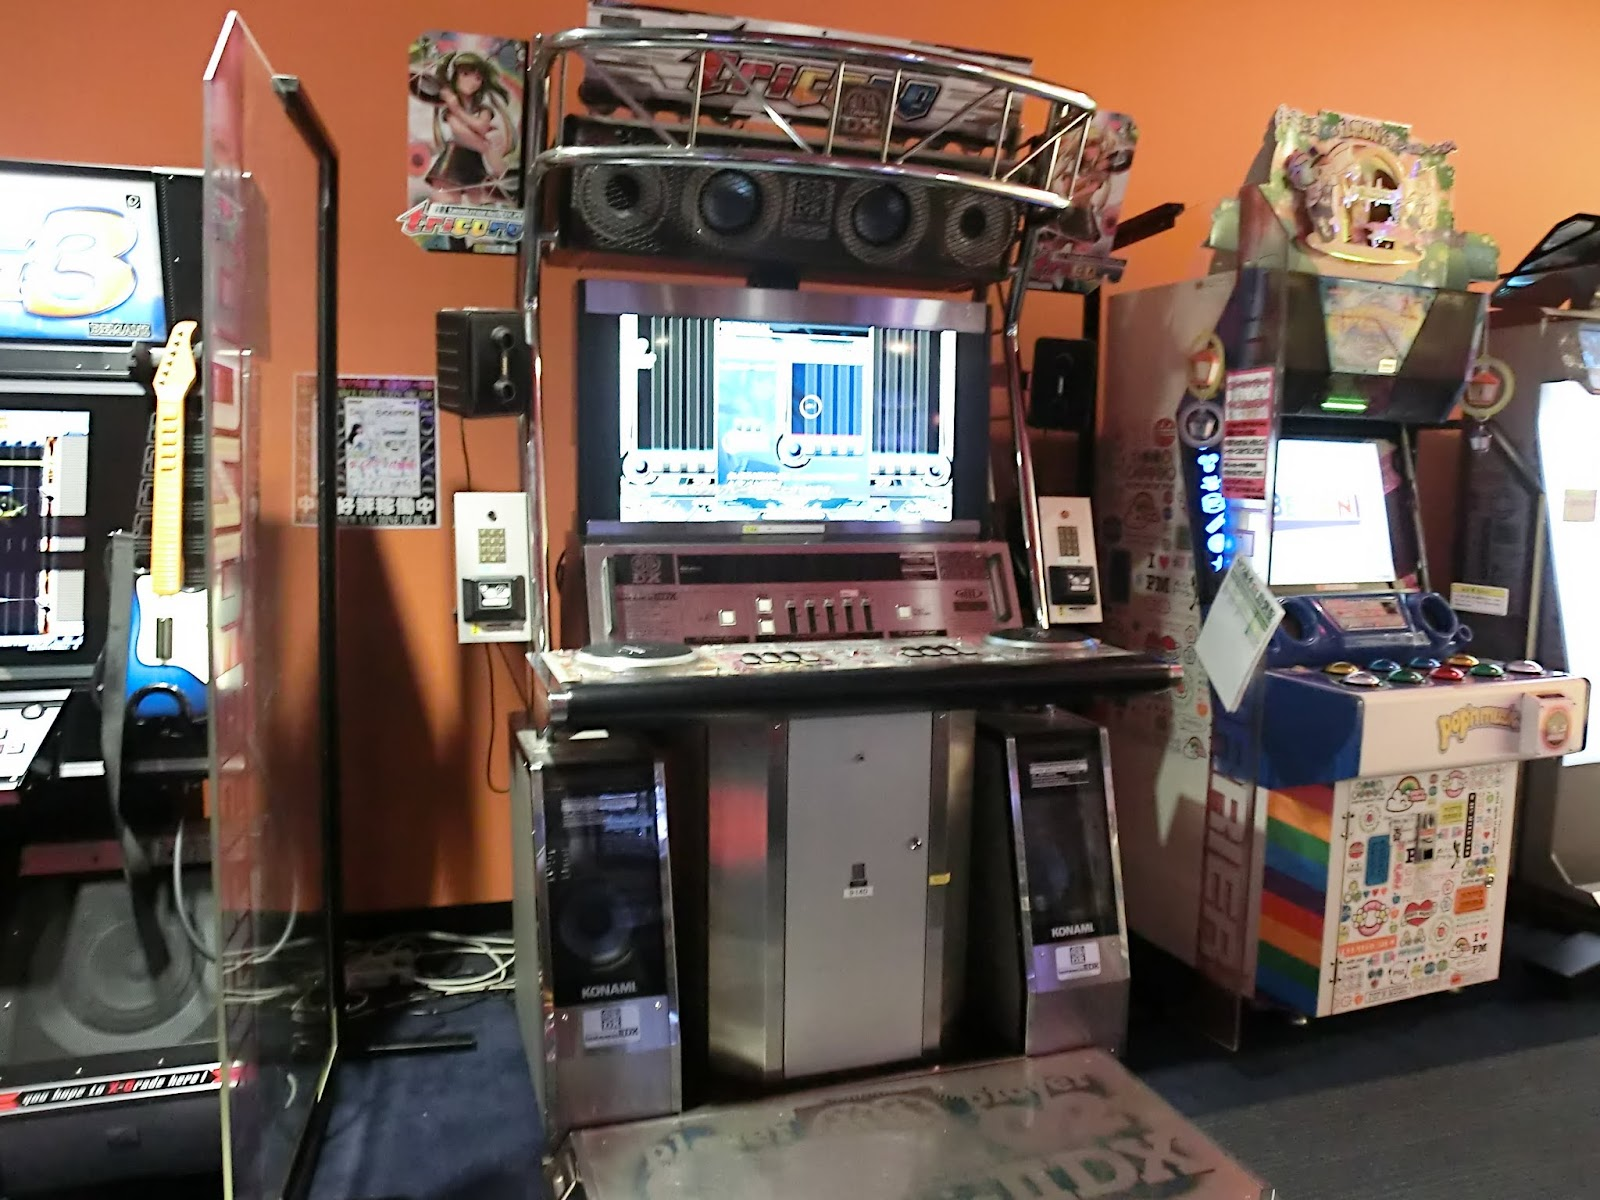 What are some of your favorite looking Arcade cabinets? - NeoGAF